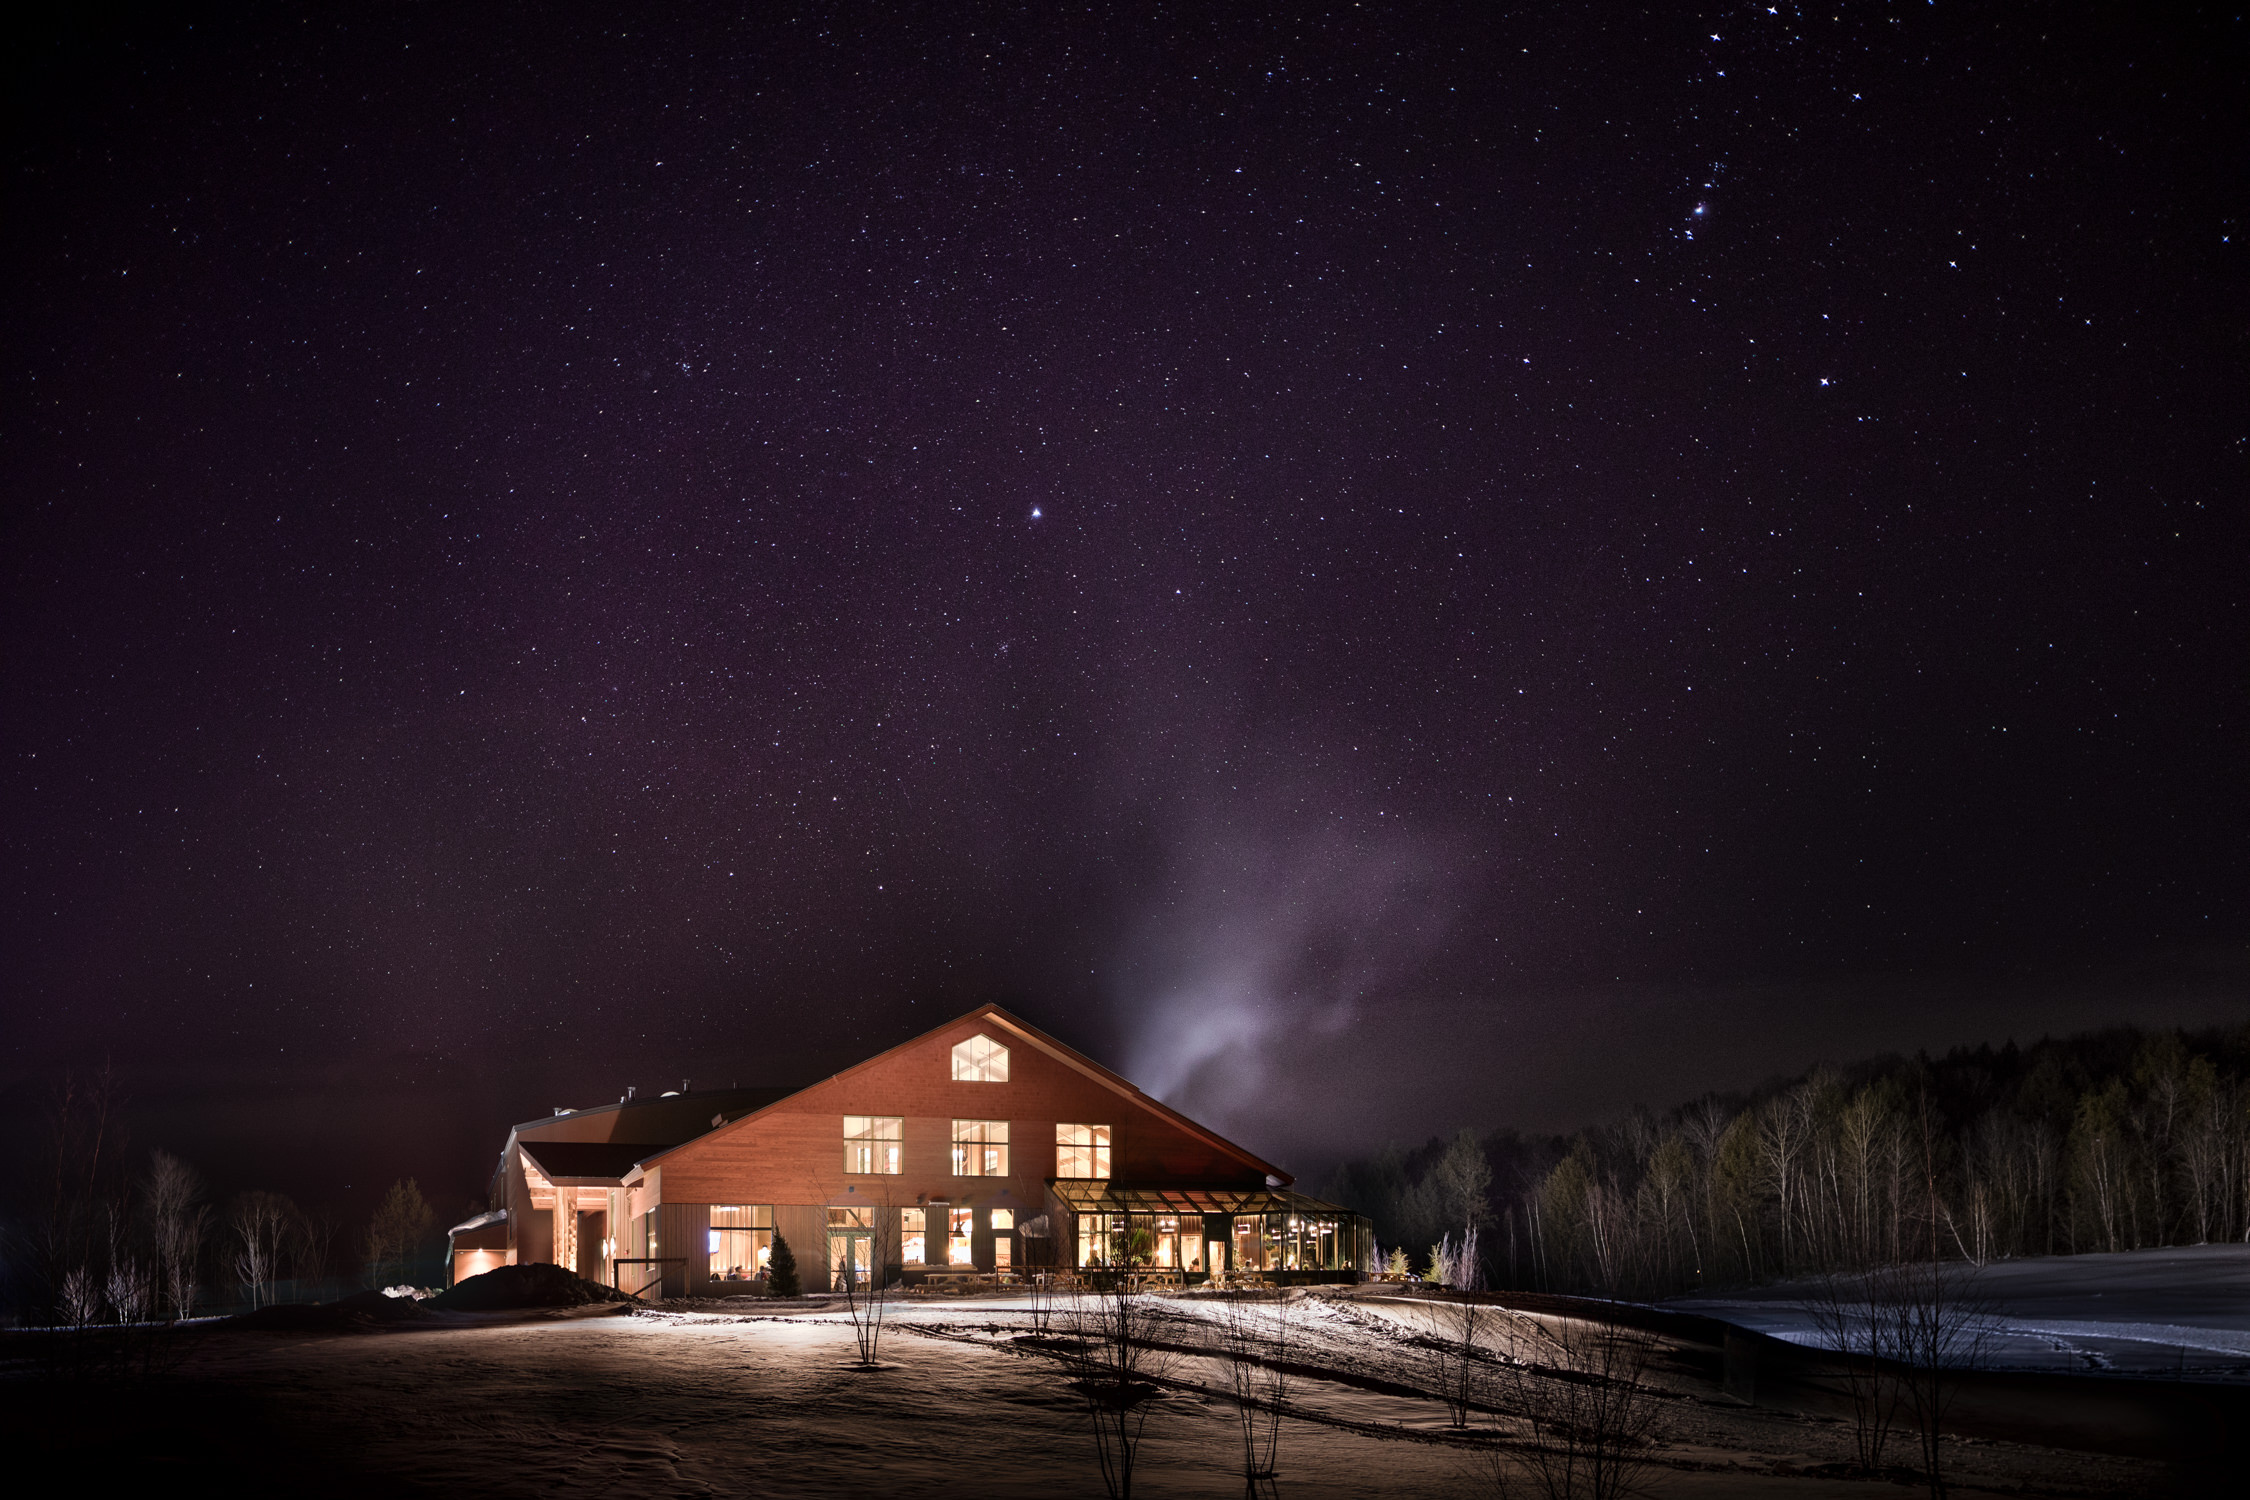 Photo of the Trapp Bierhall in Stowe Vermont taken at night under a starry sky by Vermont architecture photographer Stina Booth